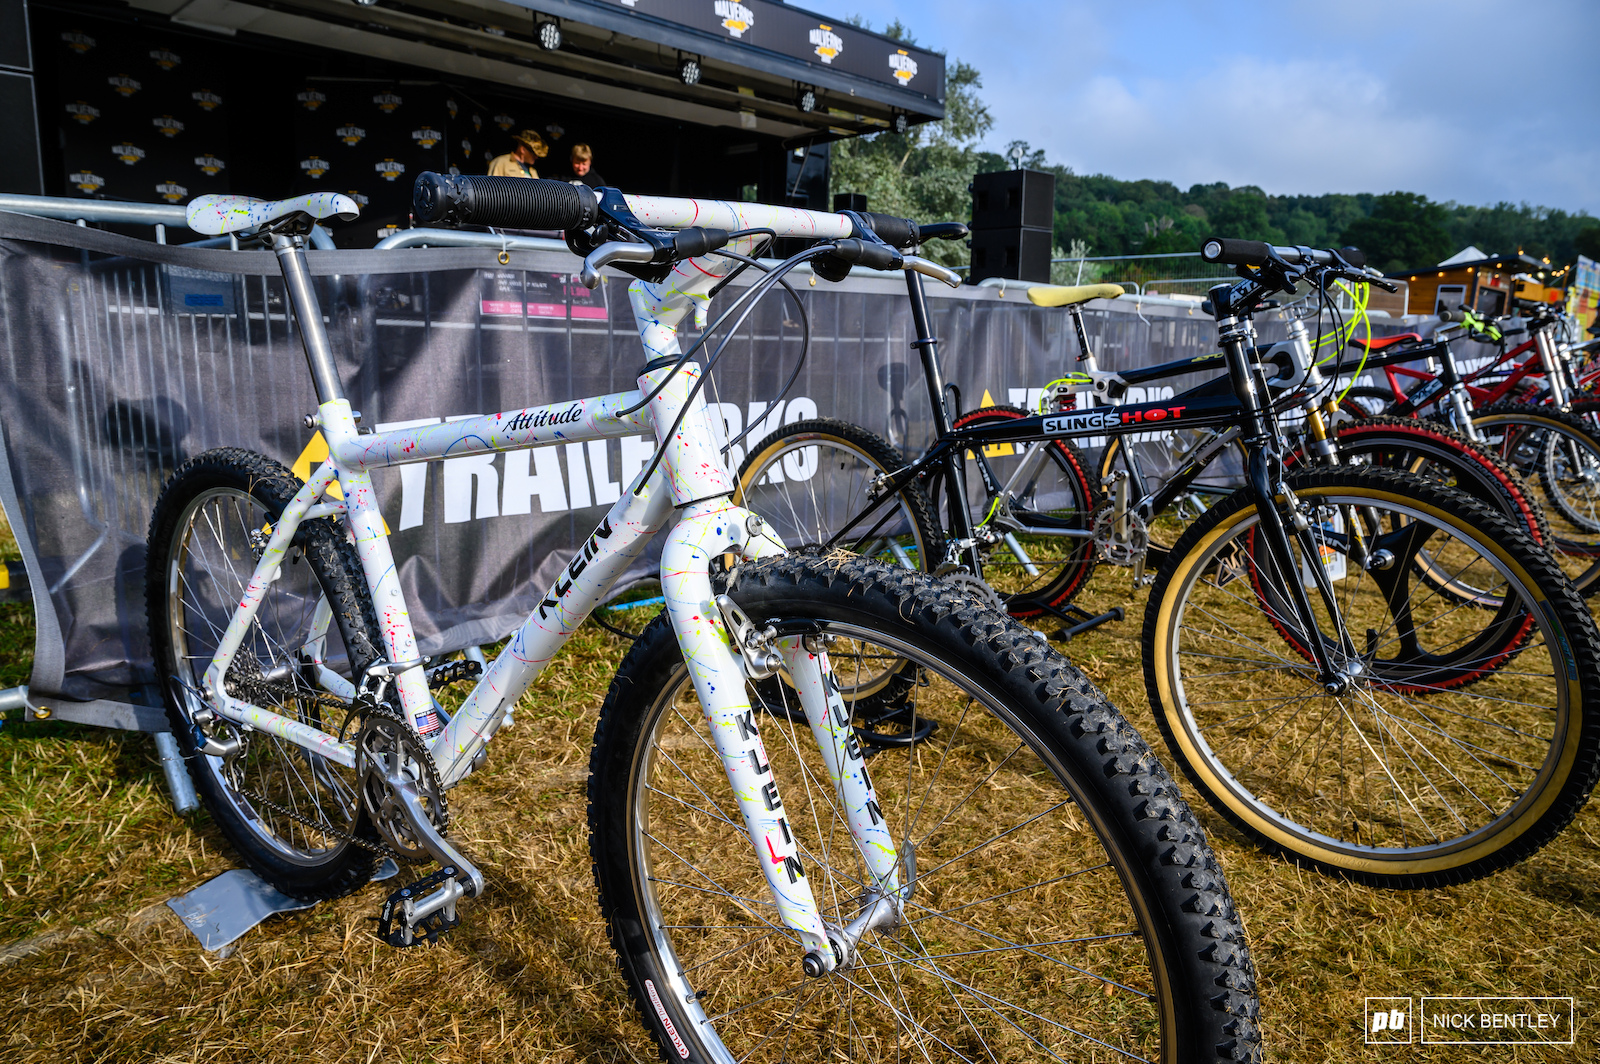 There s something about white bikes that just looks amazing well before they get muddy